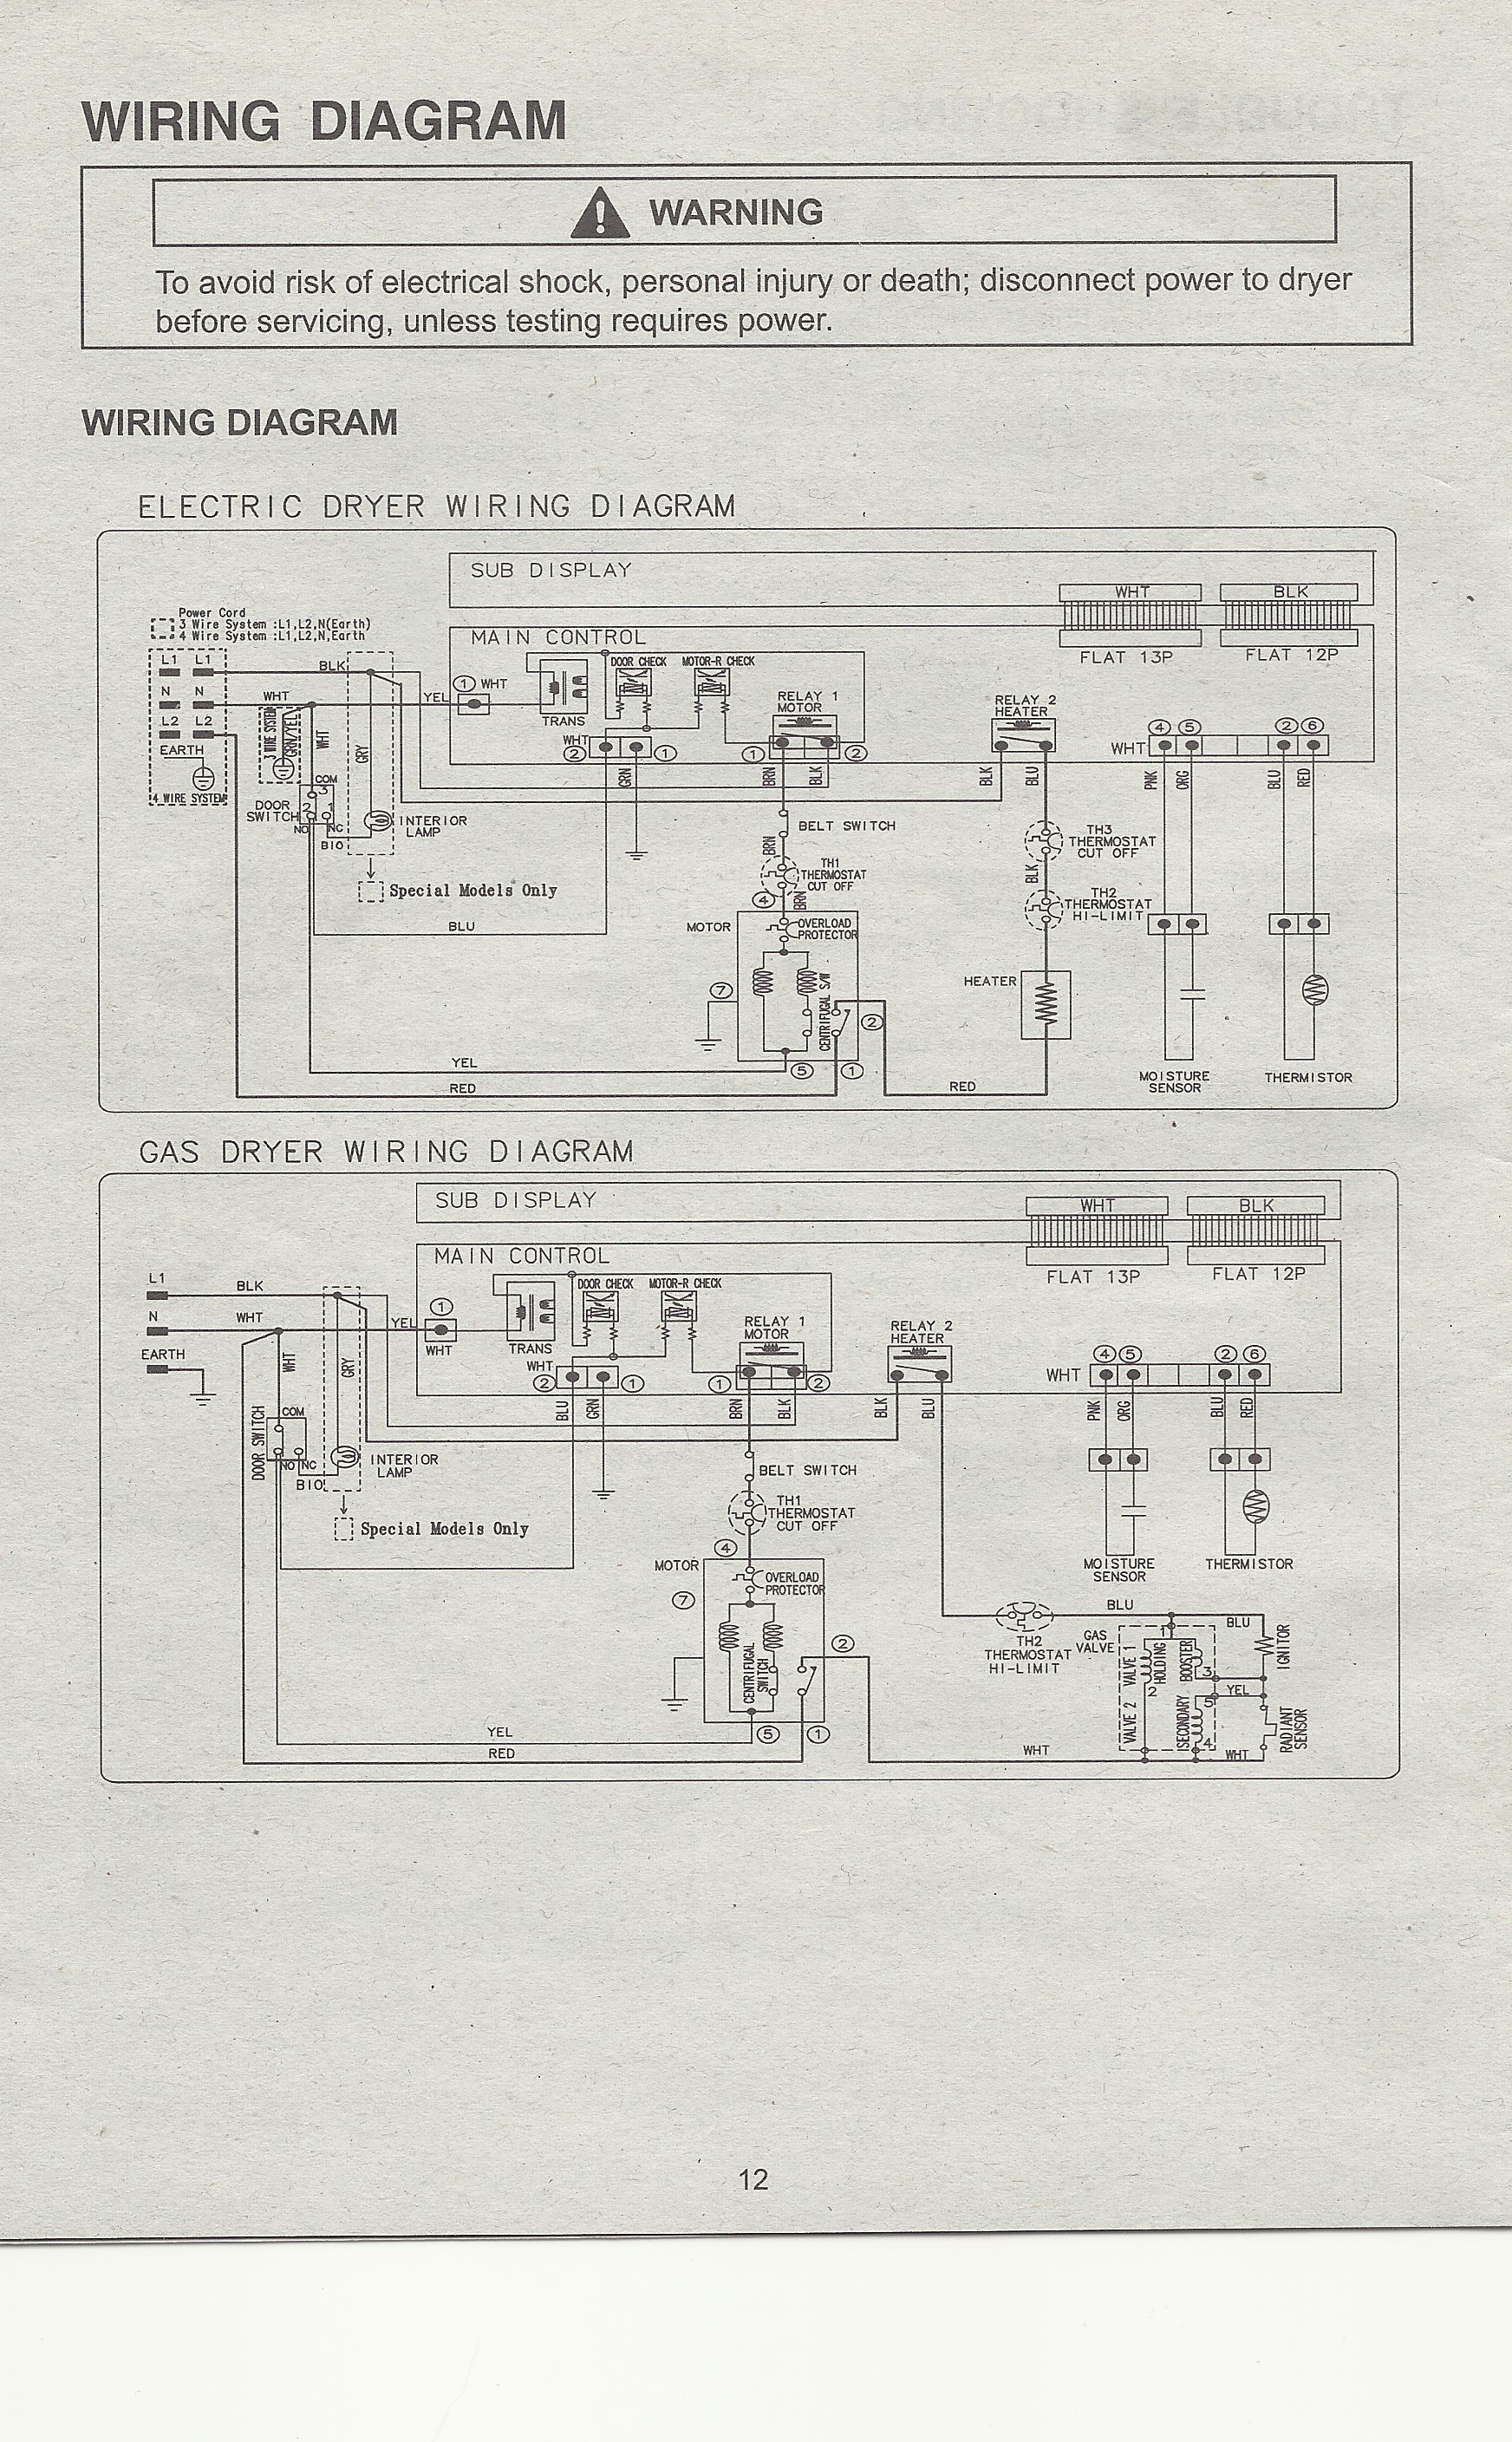 electric dryer wiring diagram fuse symbol 4 wire plug  help needed readingrat